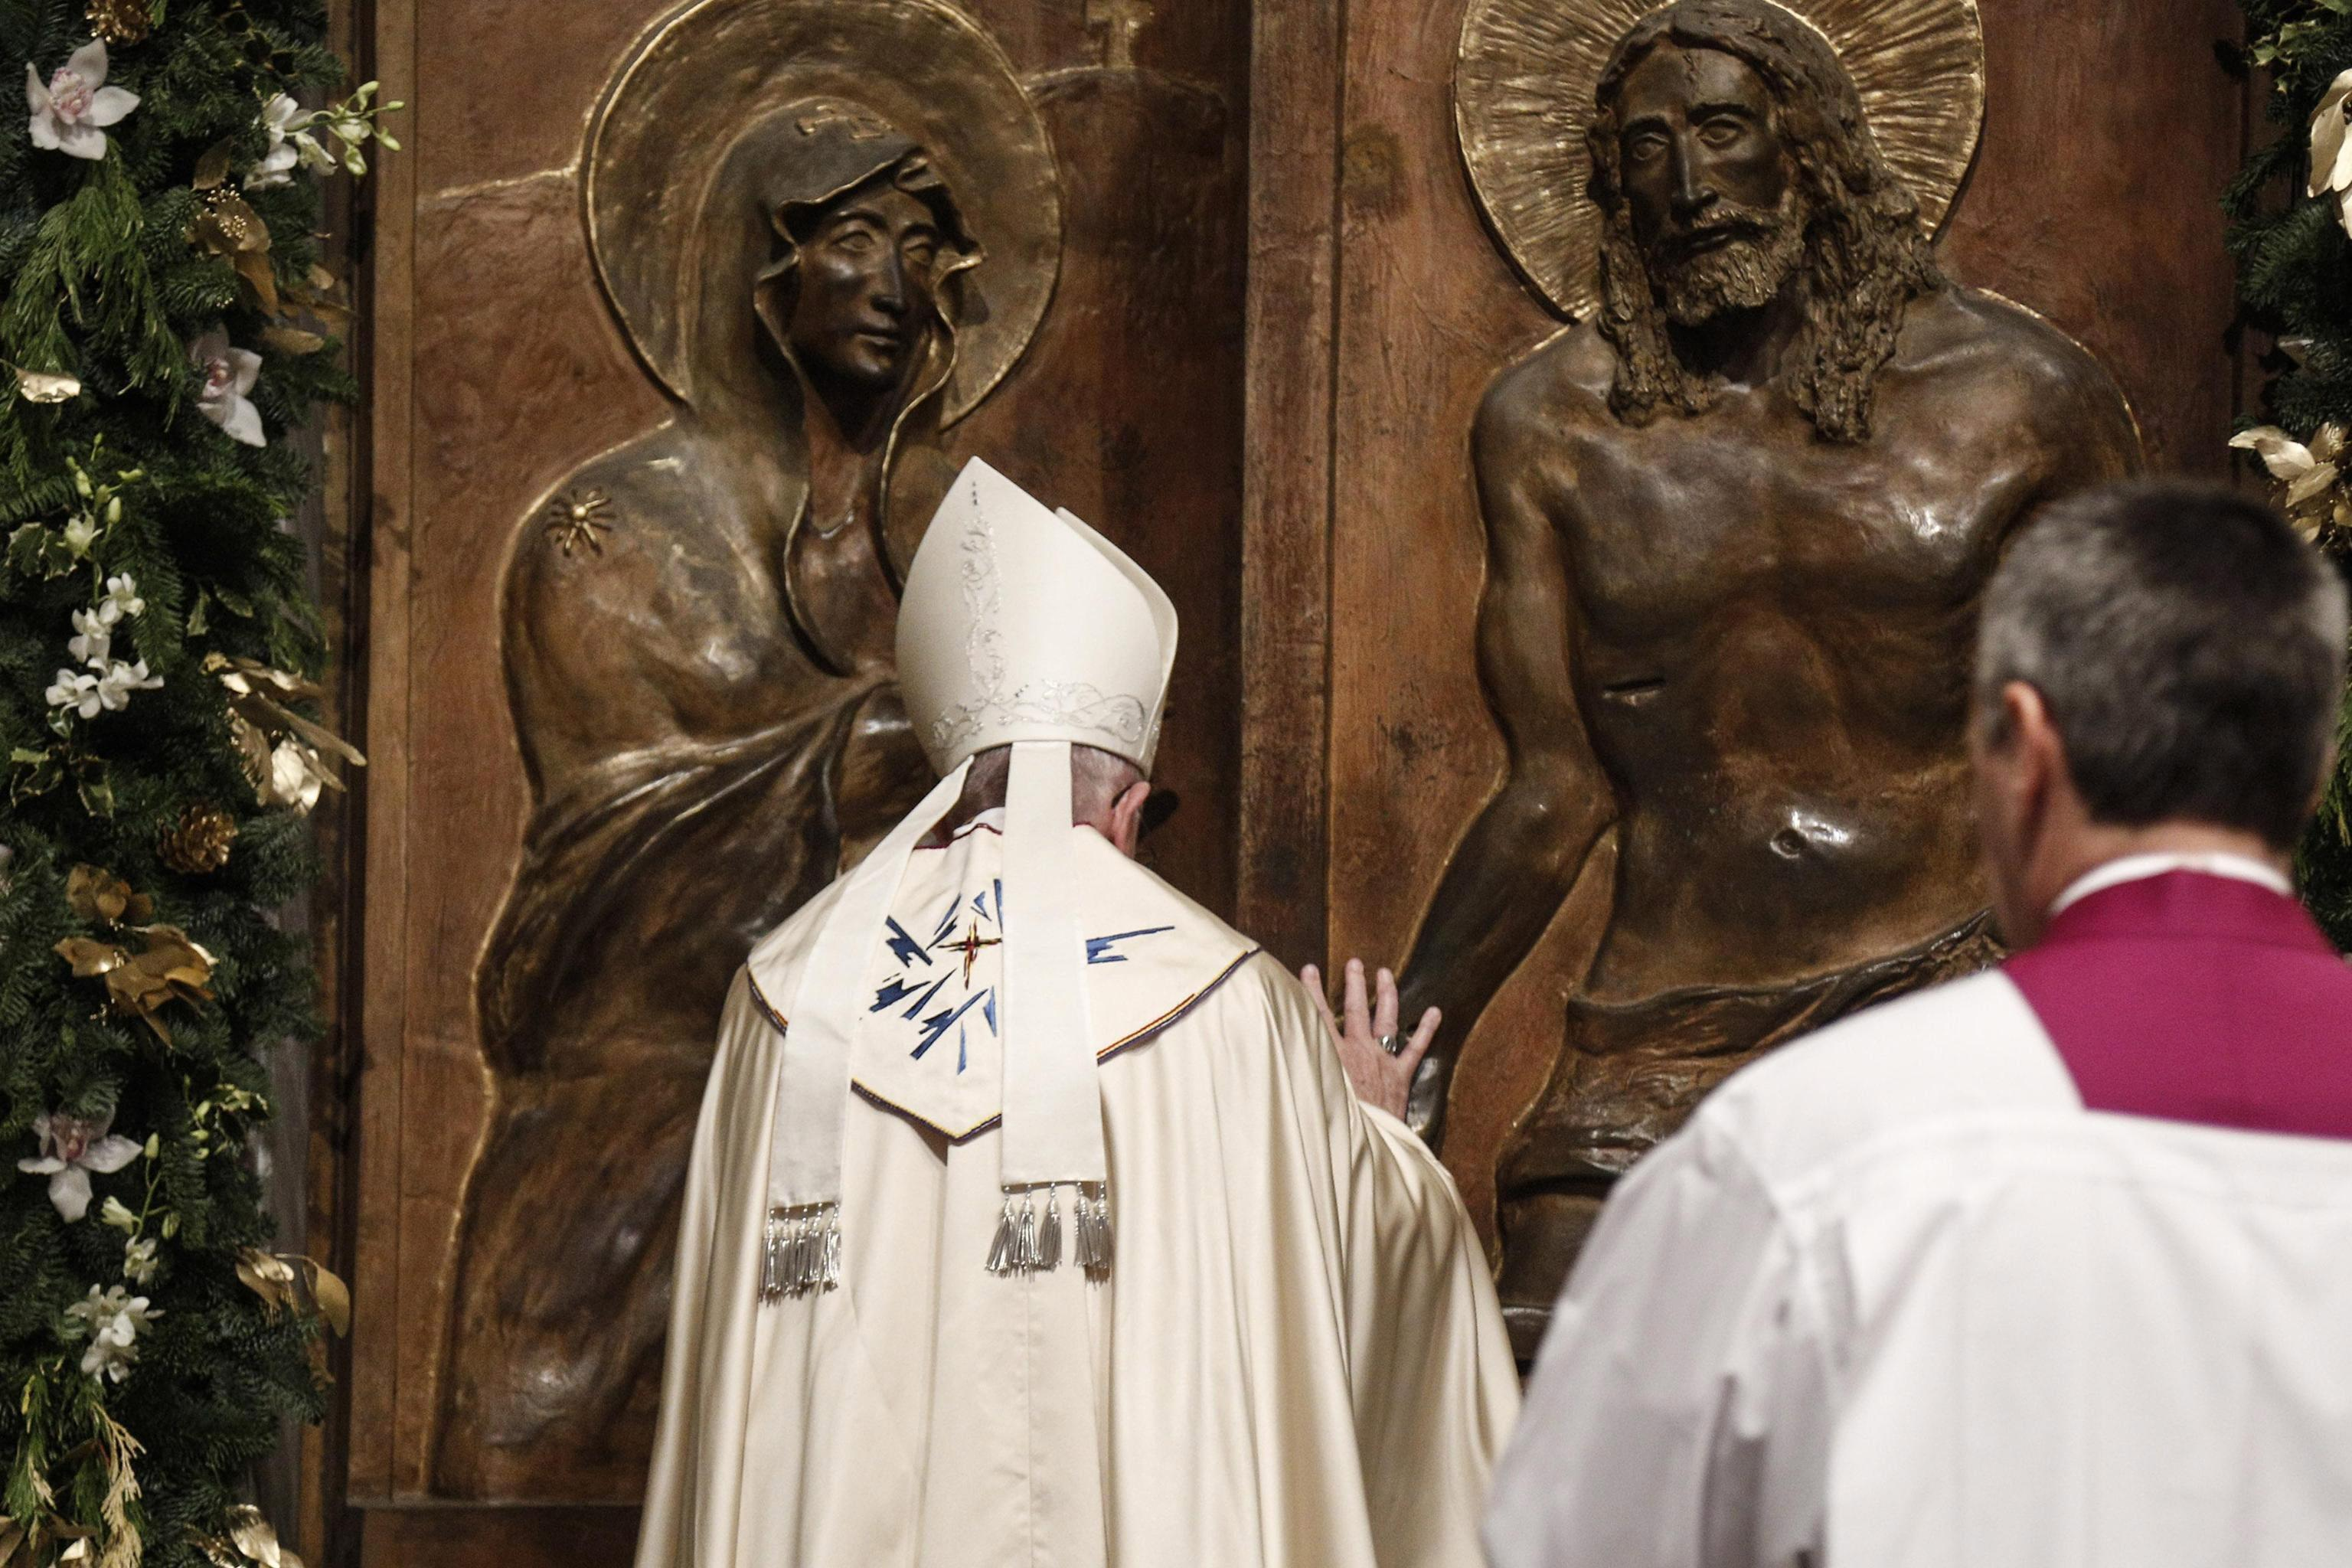 Pope Francis opens the Holy Door of Basilica of Saint Mary Major